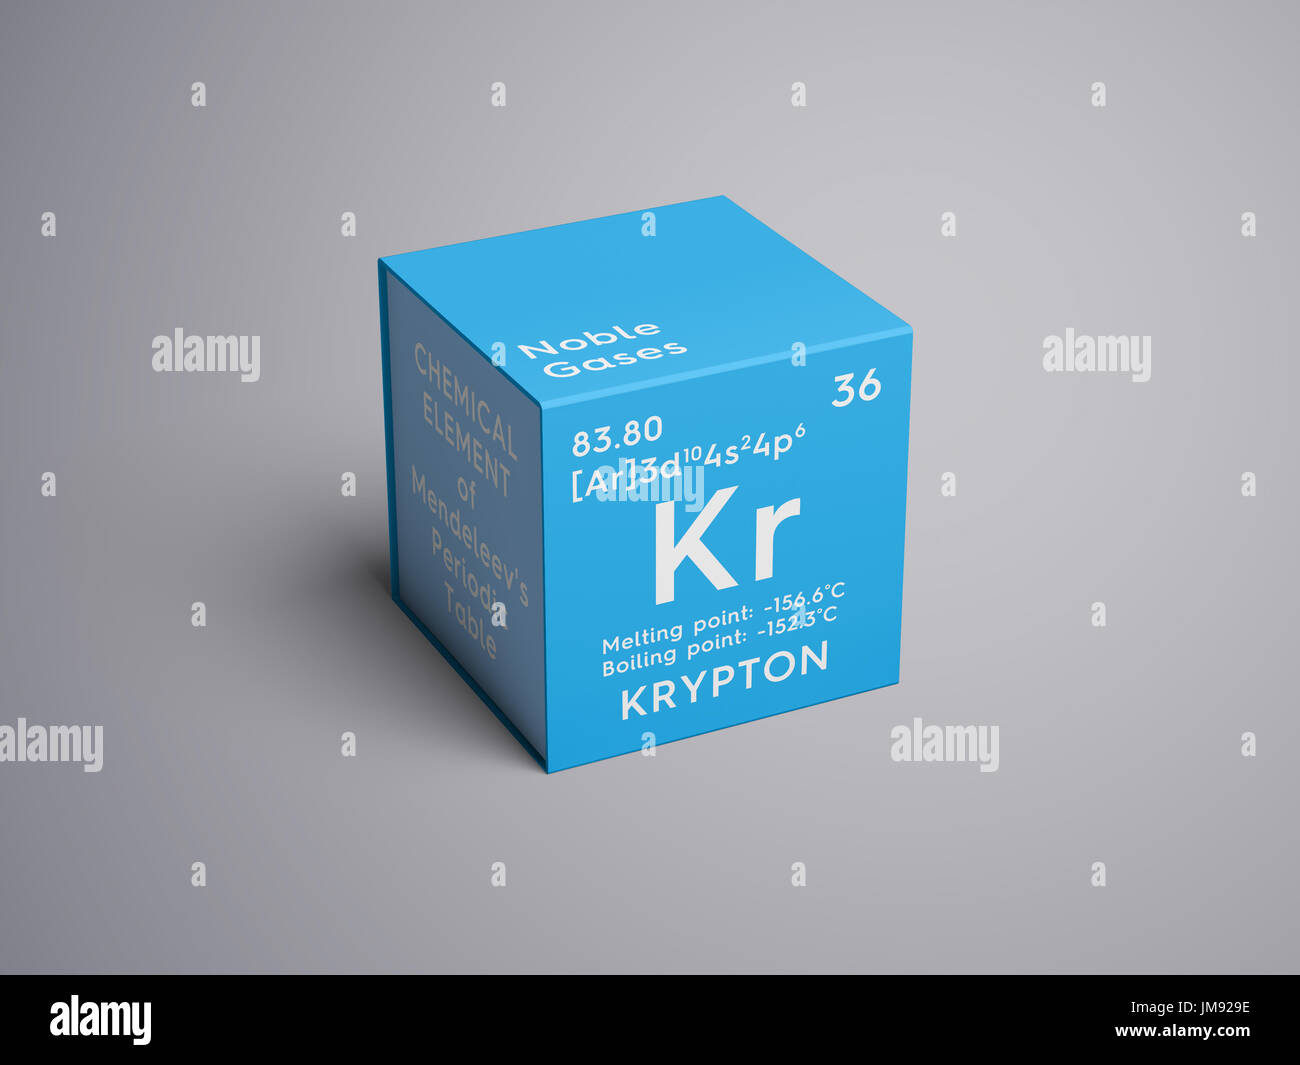 Krypton noble gases chemical element of mendeleevs periodic noble gases chemical element of mendeleevs periodic table krypton in square cube creative concept gamestrikefo Gallery